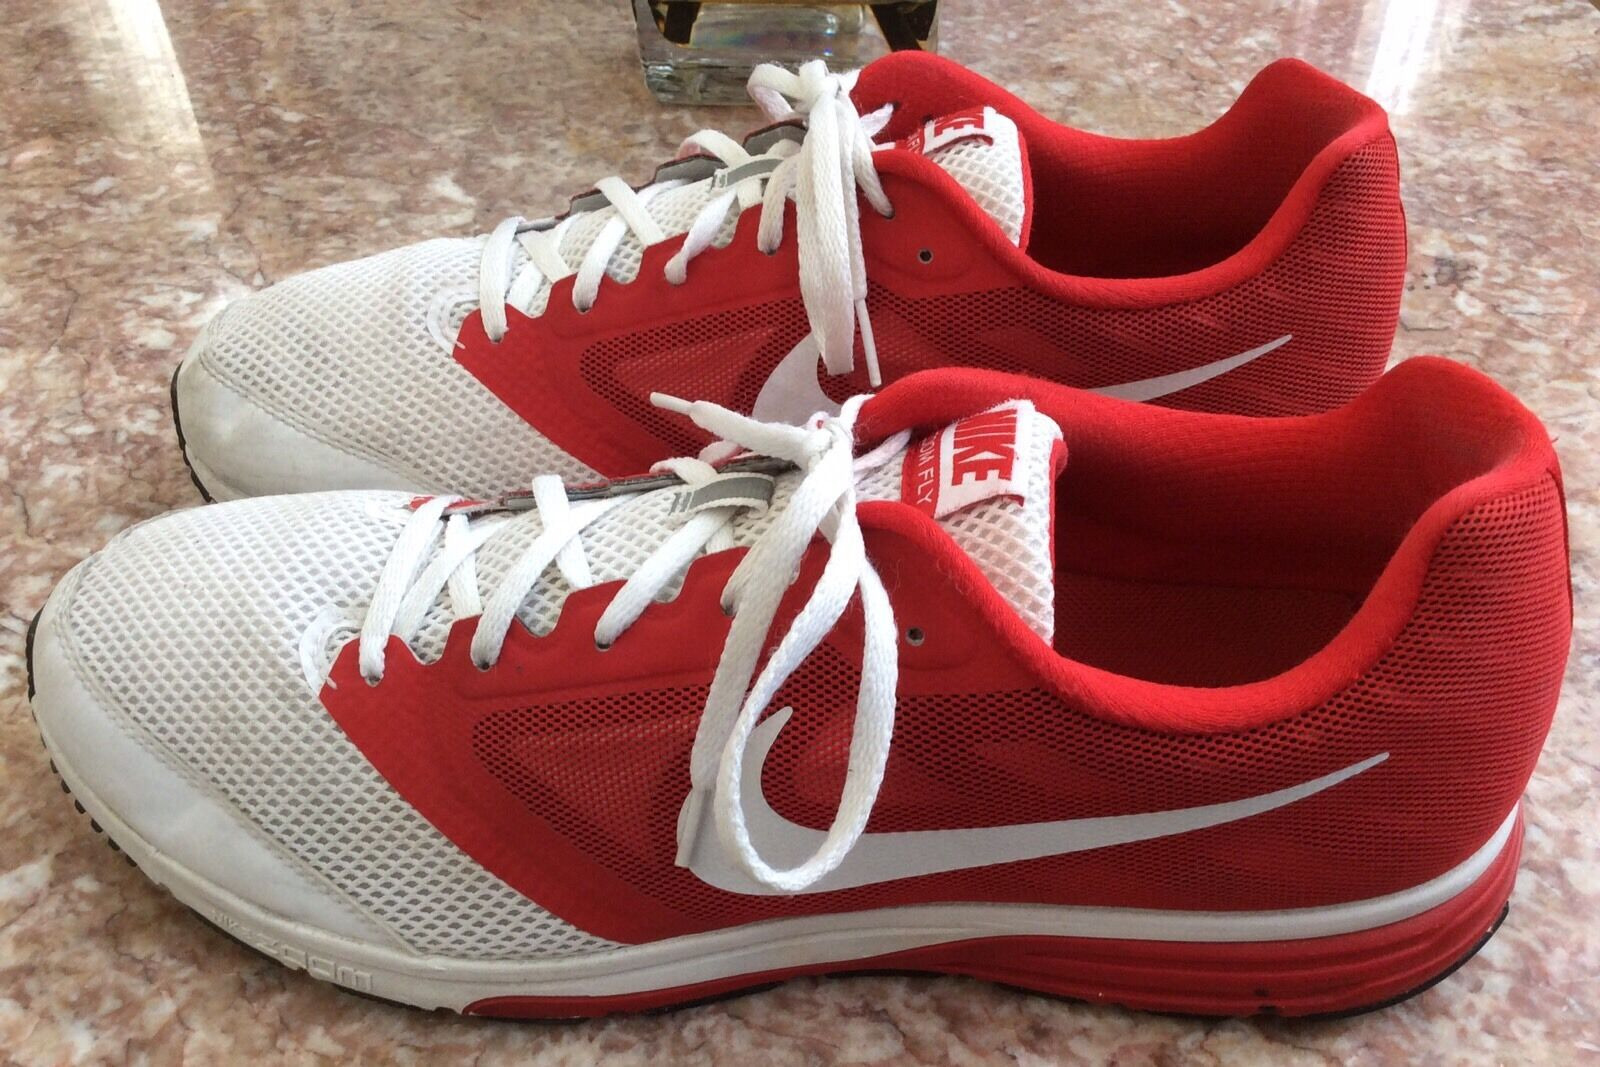 Nike Zoom Fly Men's Team Red/White Athletic Running Shoes Sz 14 - 652828-161 EUC